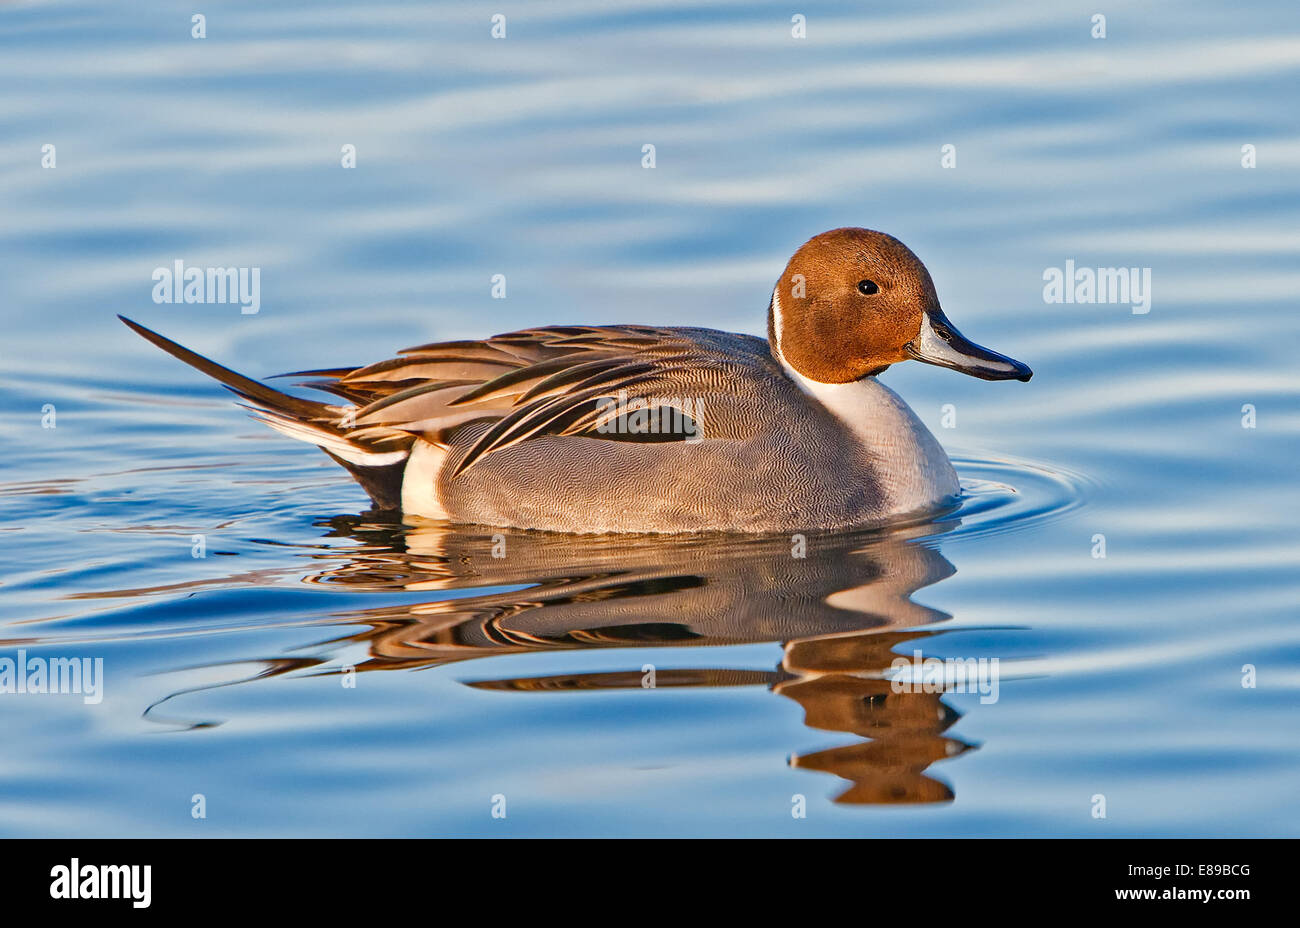 Male Pintail Duck taking a swim in a pond on a beautiful afternoon. - Stock Image